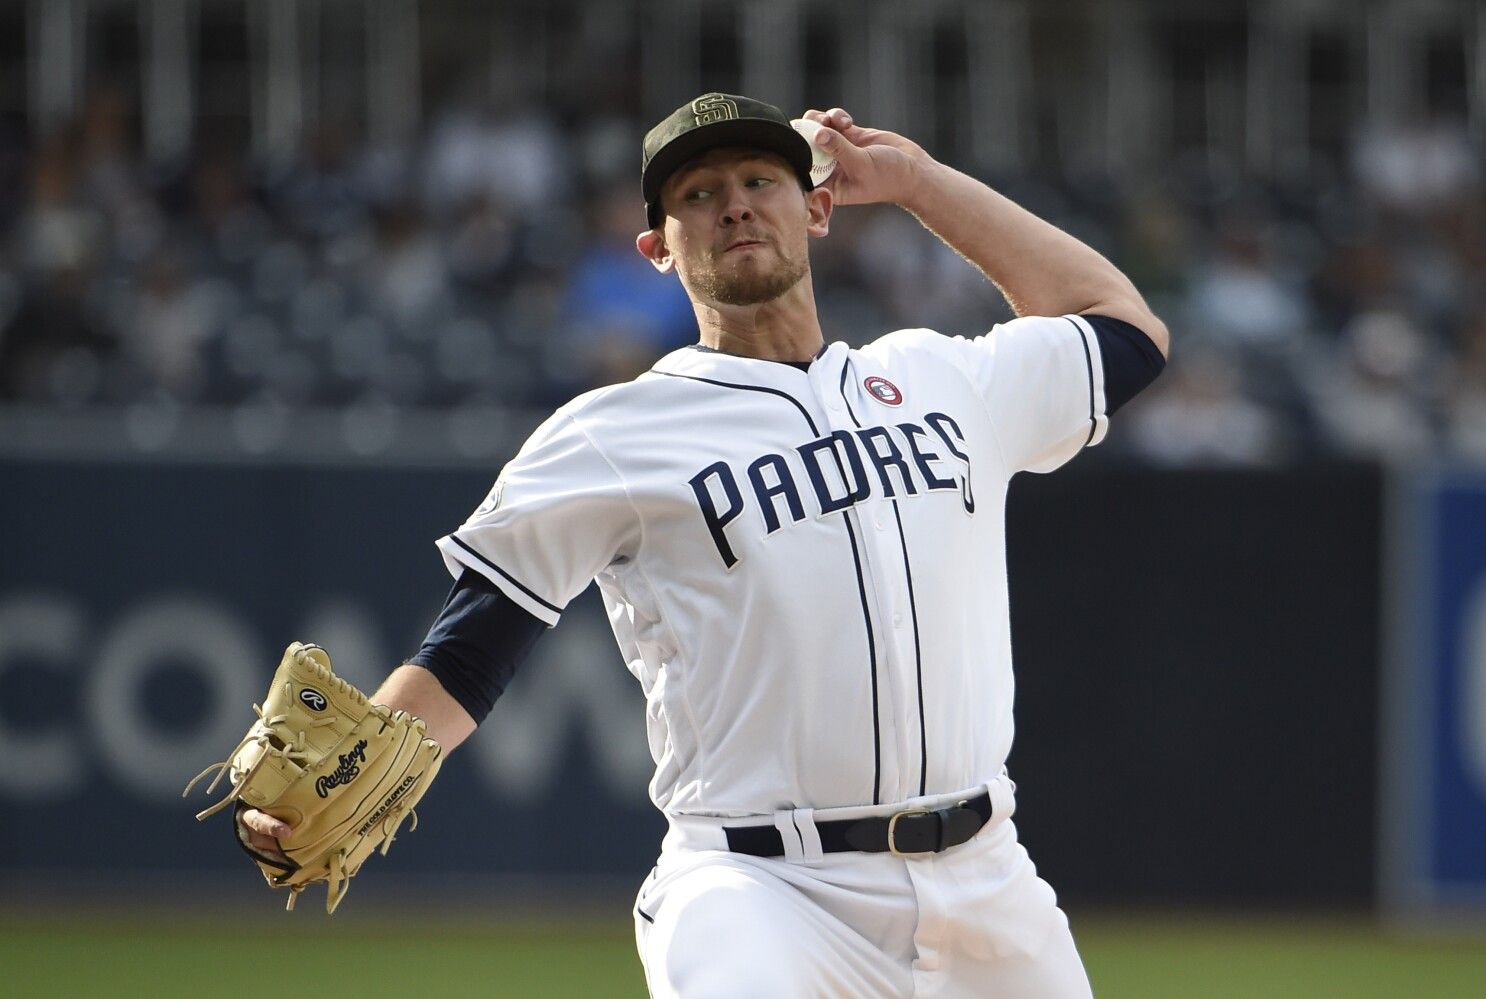 Padres Notes Margevicius Returns For Coverage Martini